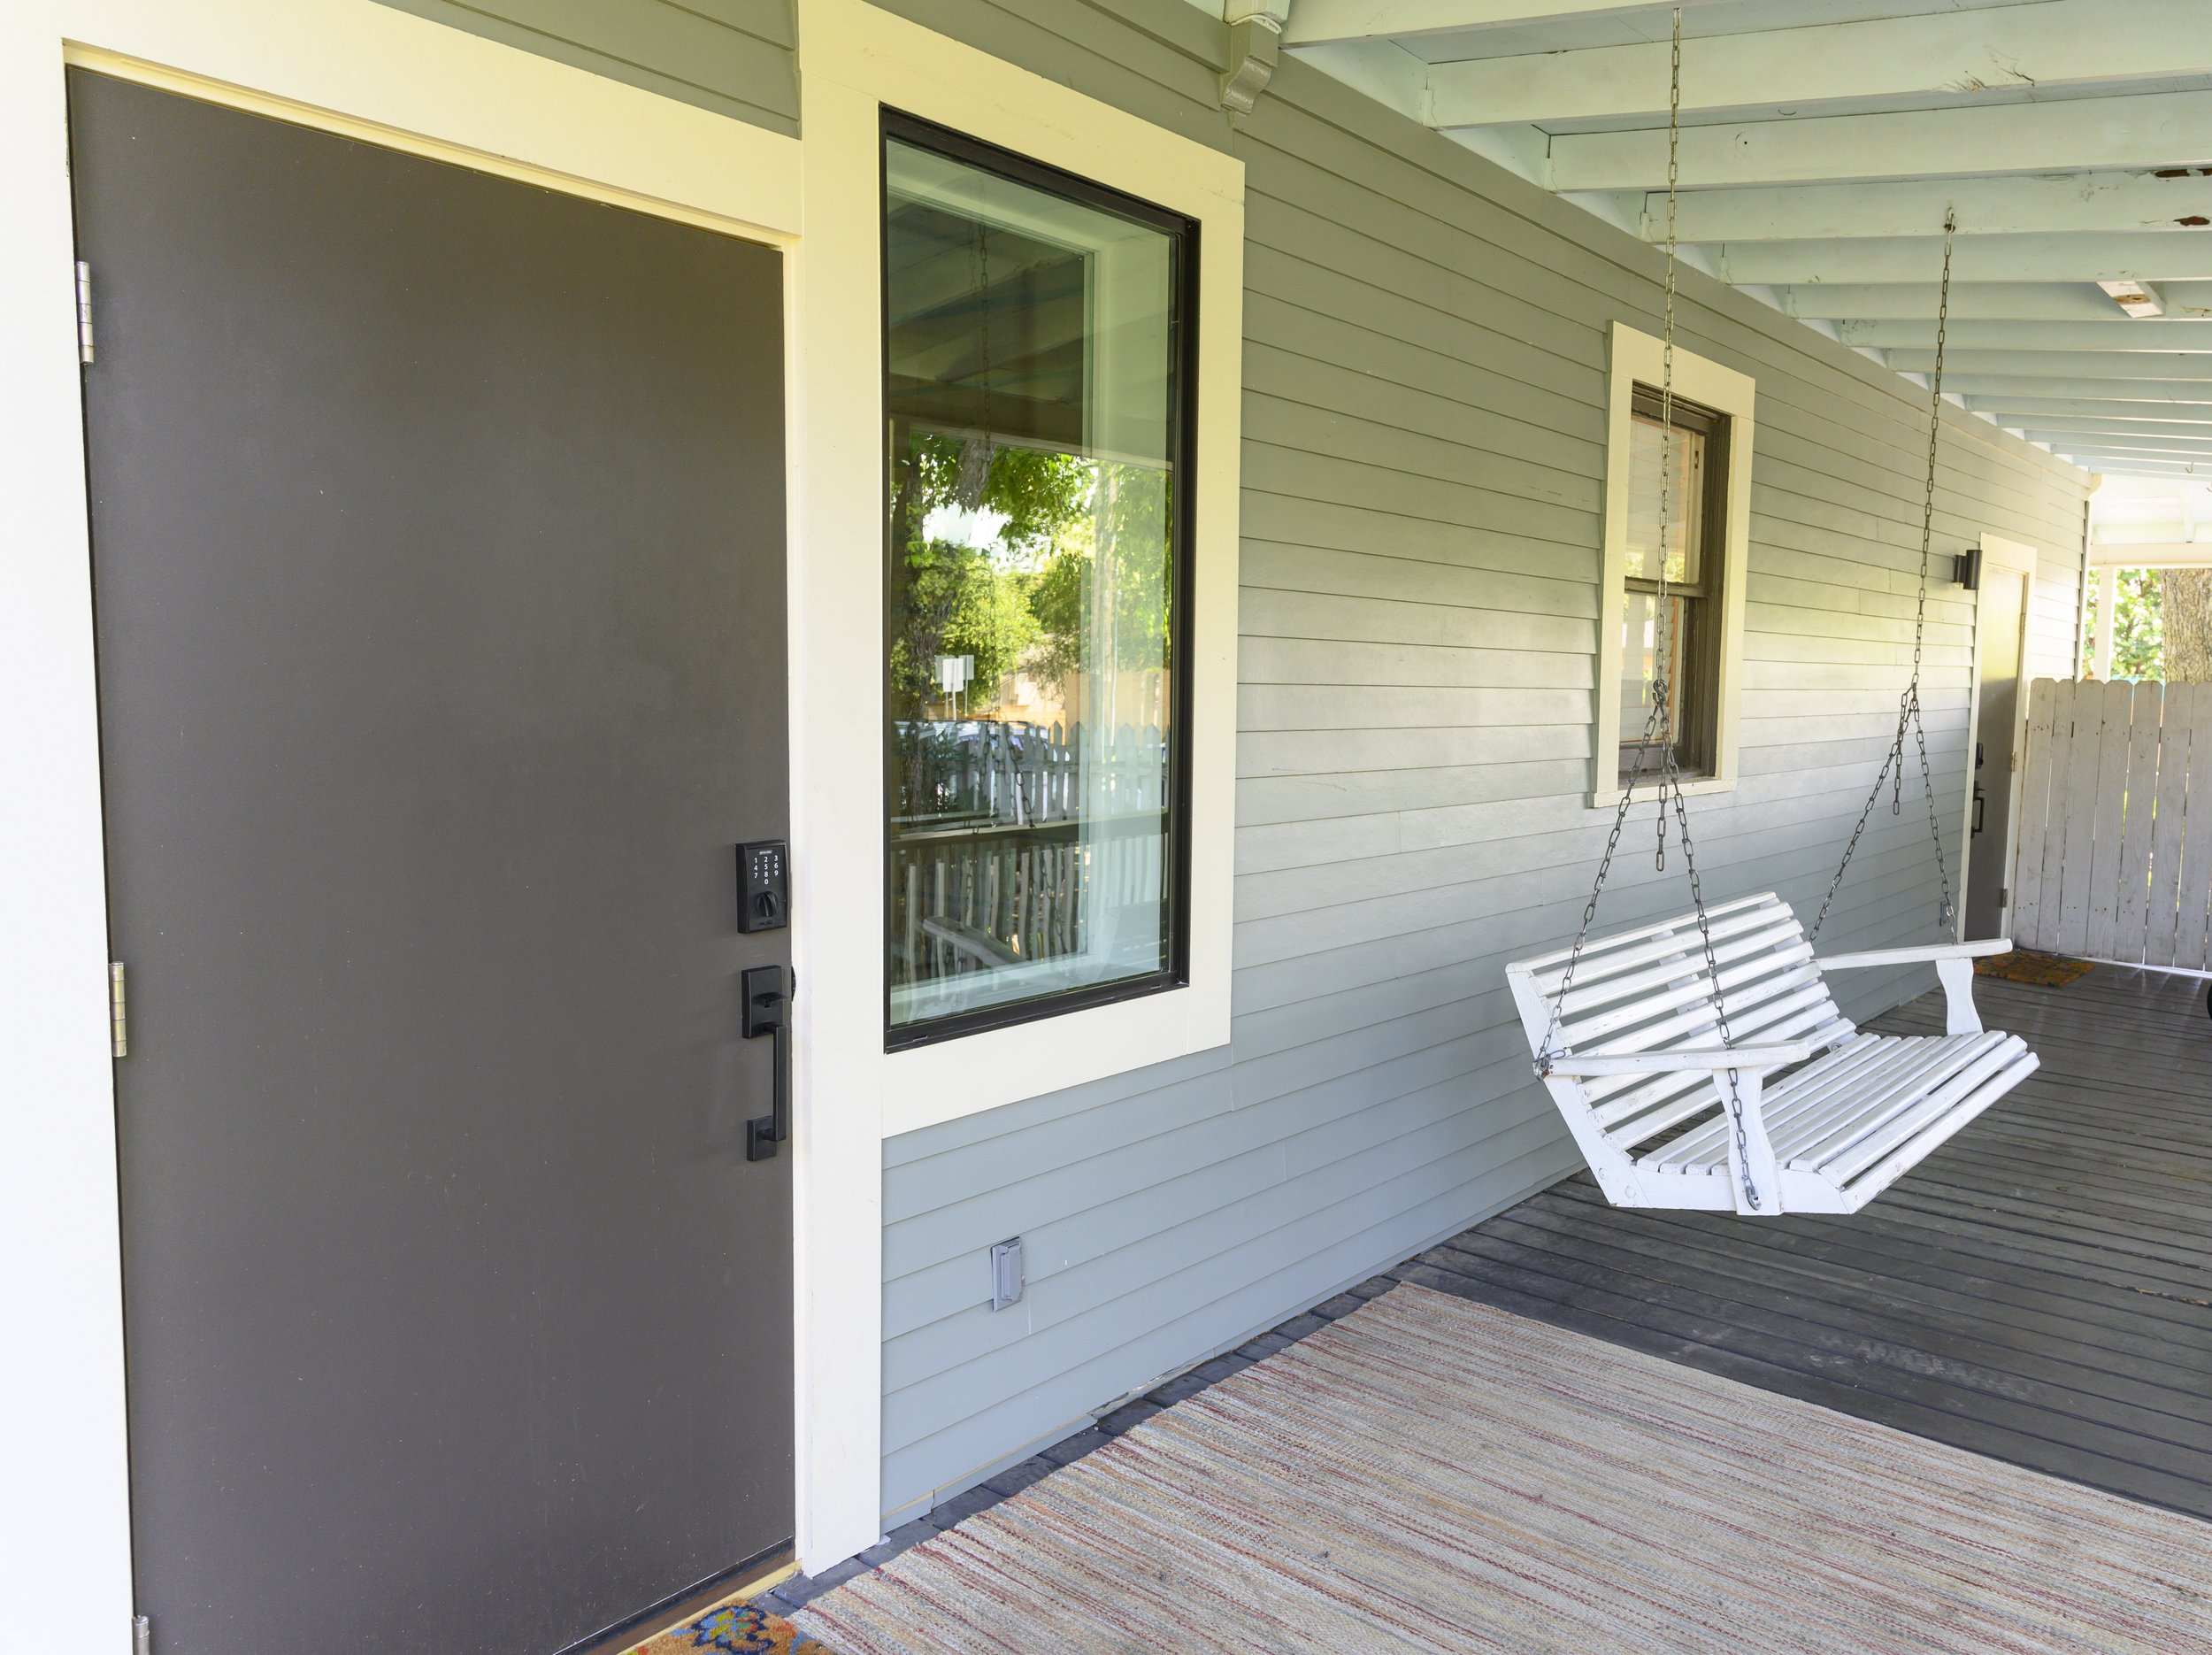 the porch swing… - A peaceful covered porch looks out over the yard. A nice place to sip some lemonade and re charge.